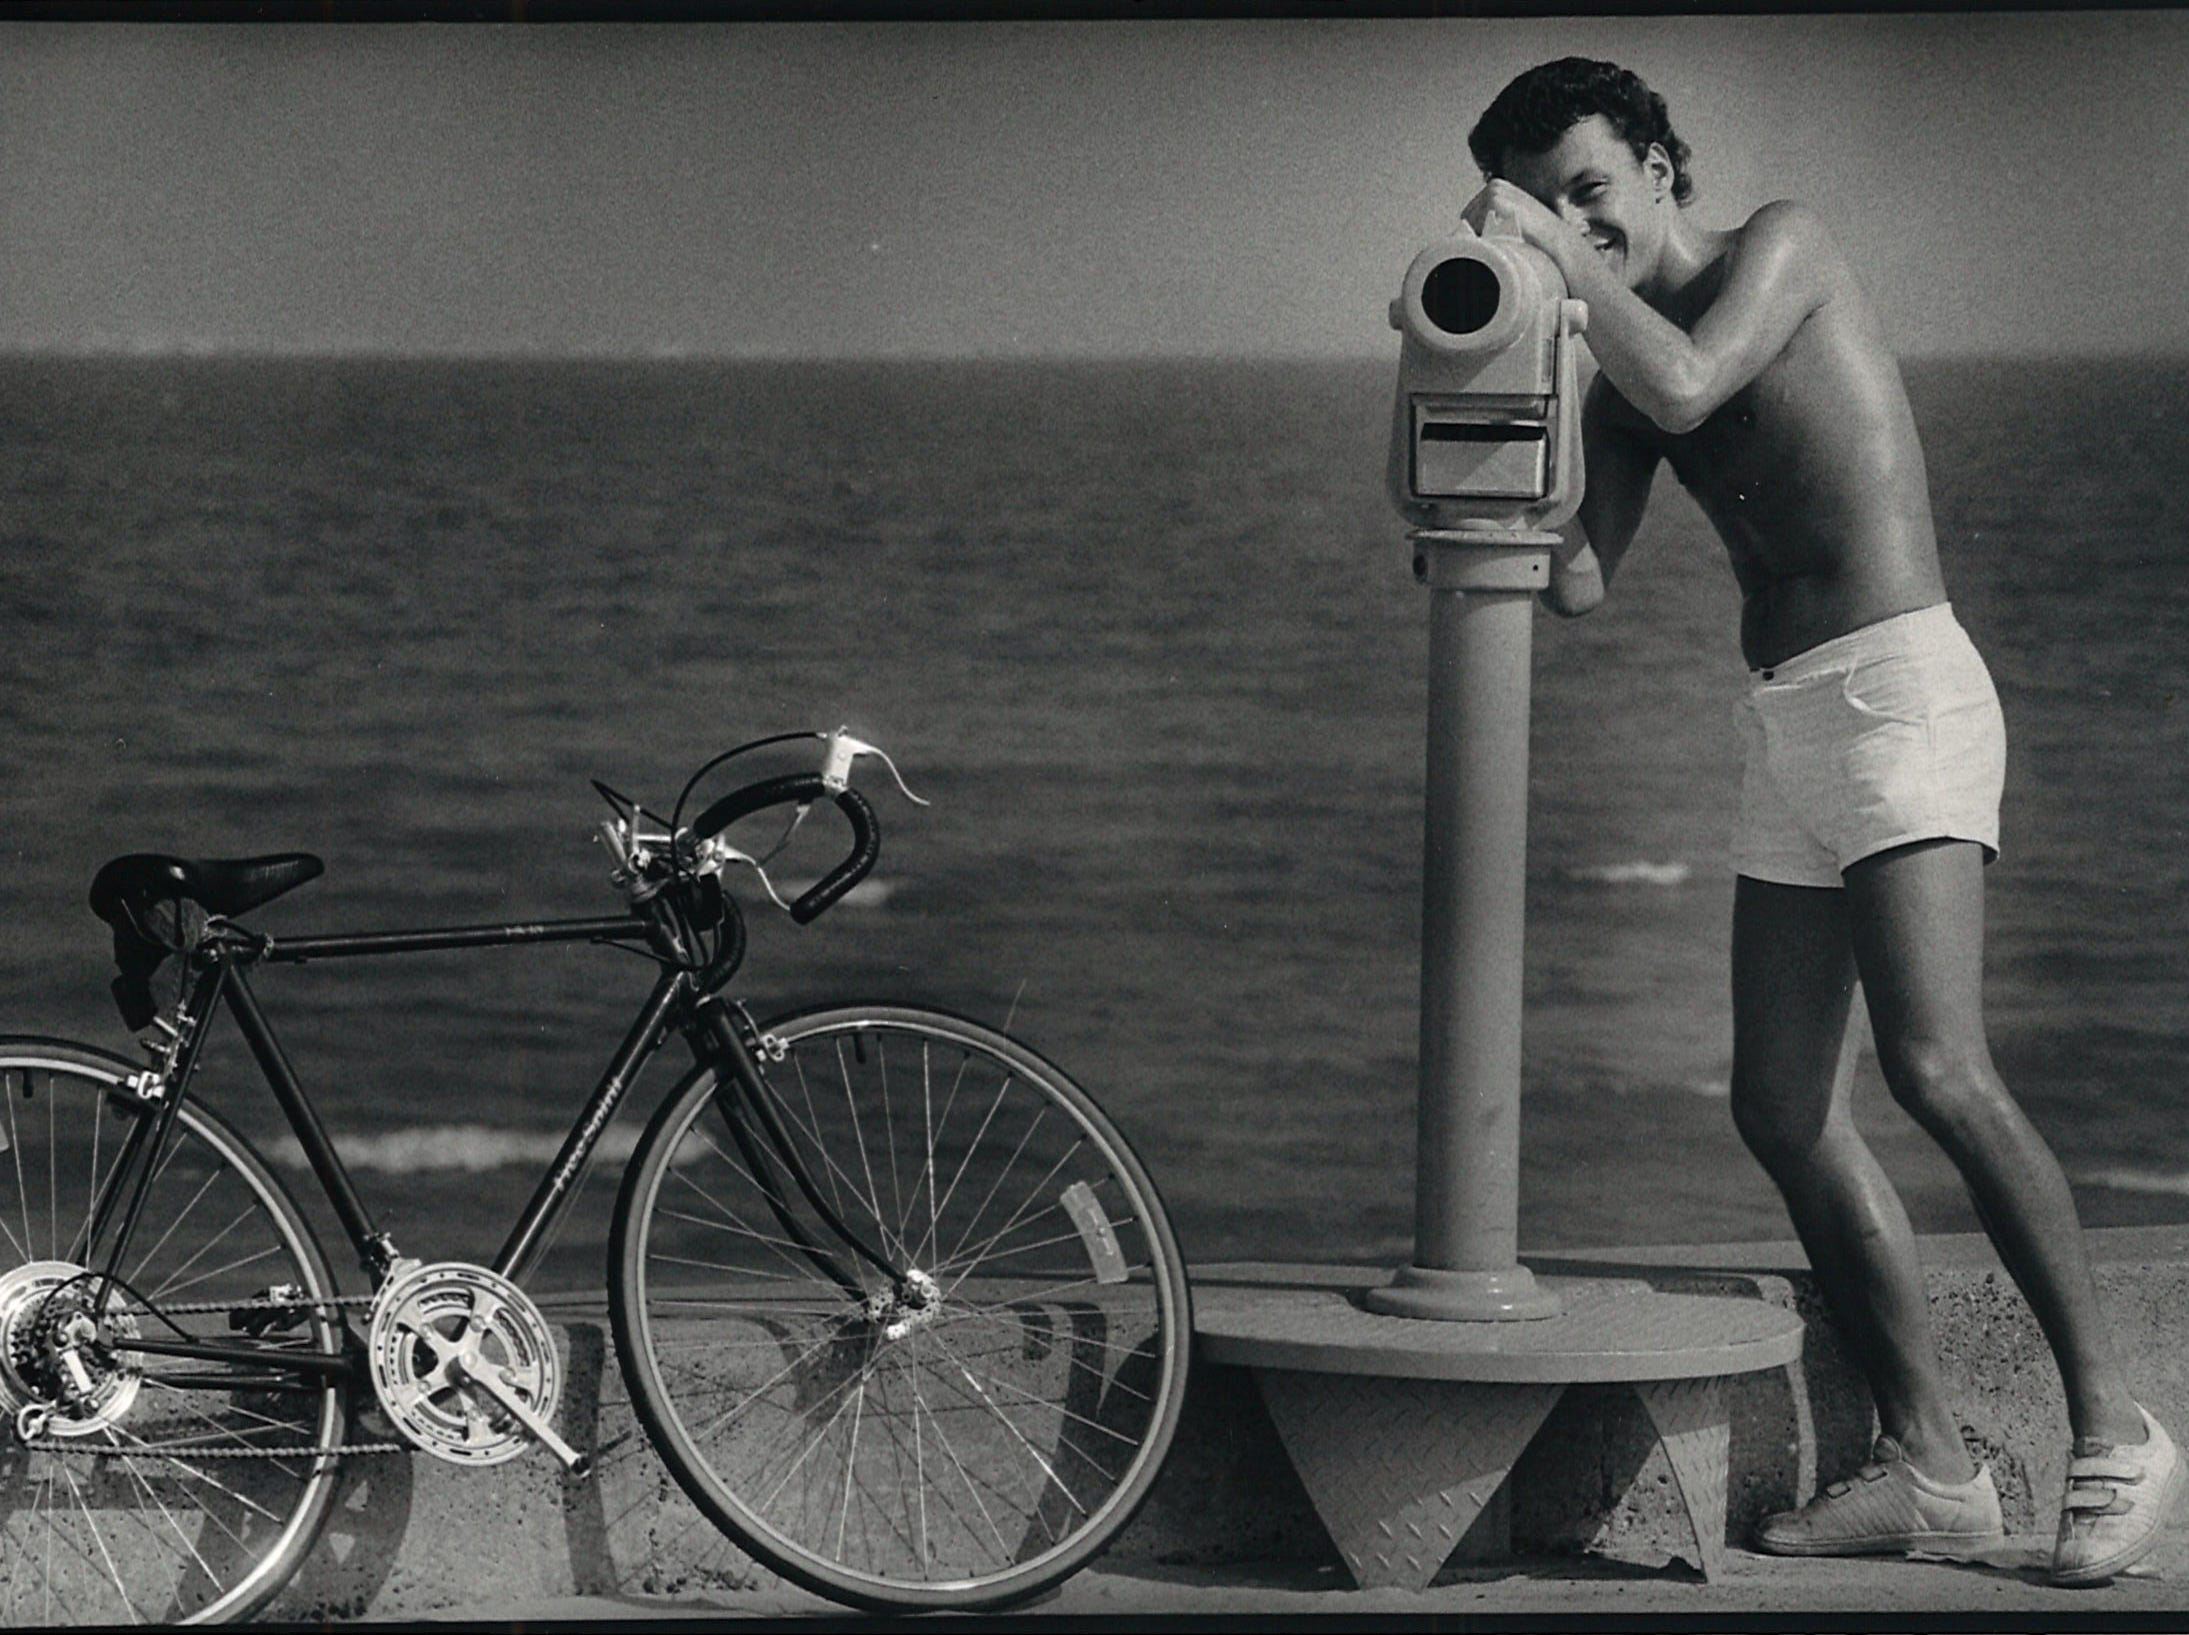 Peter McDaniel, 23, stops during his bike ride from Naval Air Station Corpus Christi to Bayfront Plaza Convention Center to check out the new telescopes on McGee Beach in downtown Corpus Christi on Sept. 4, 1987.